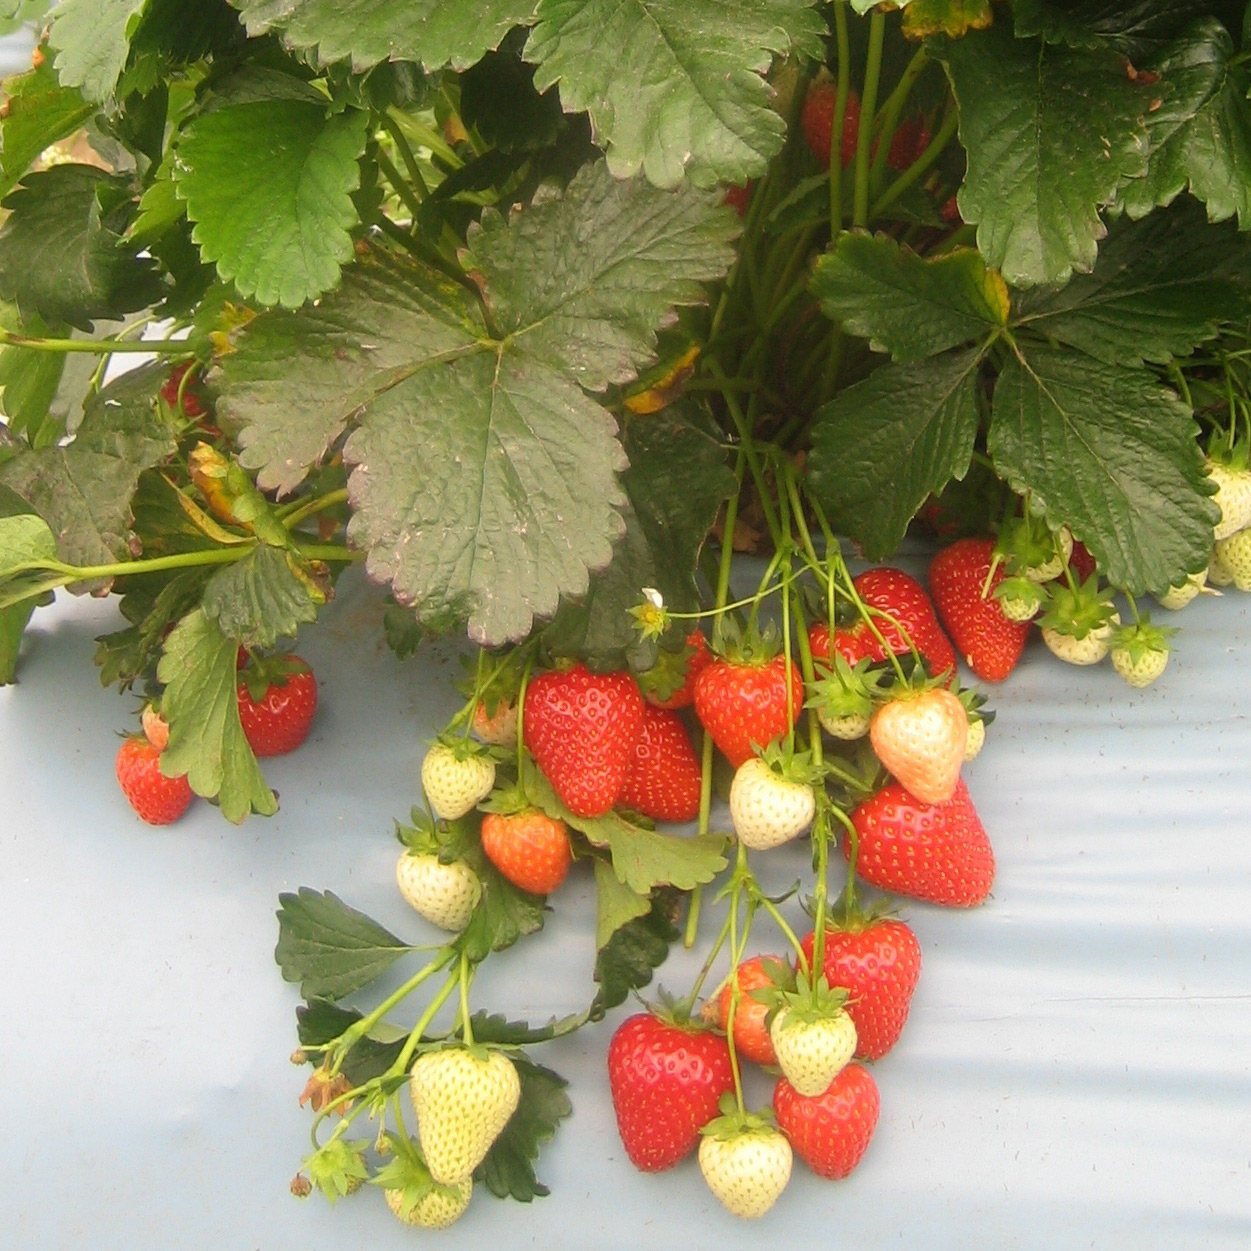 strawberry Cupid - late season fruiting